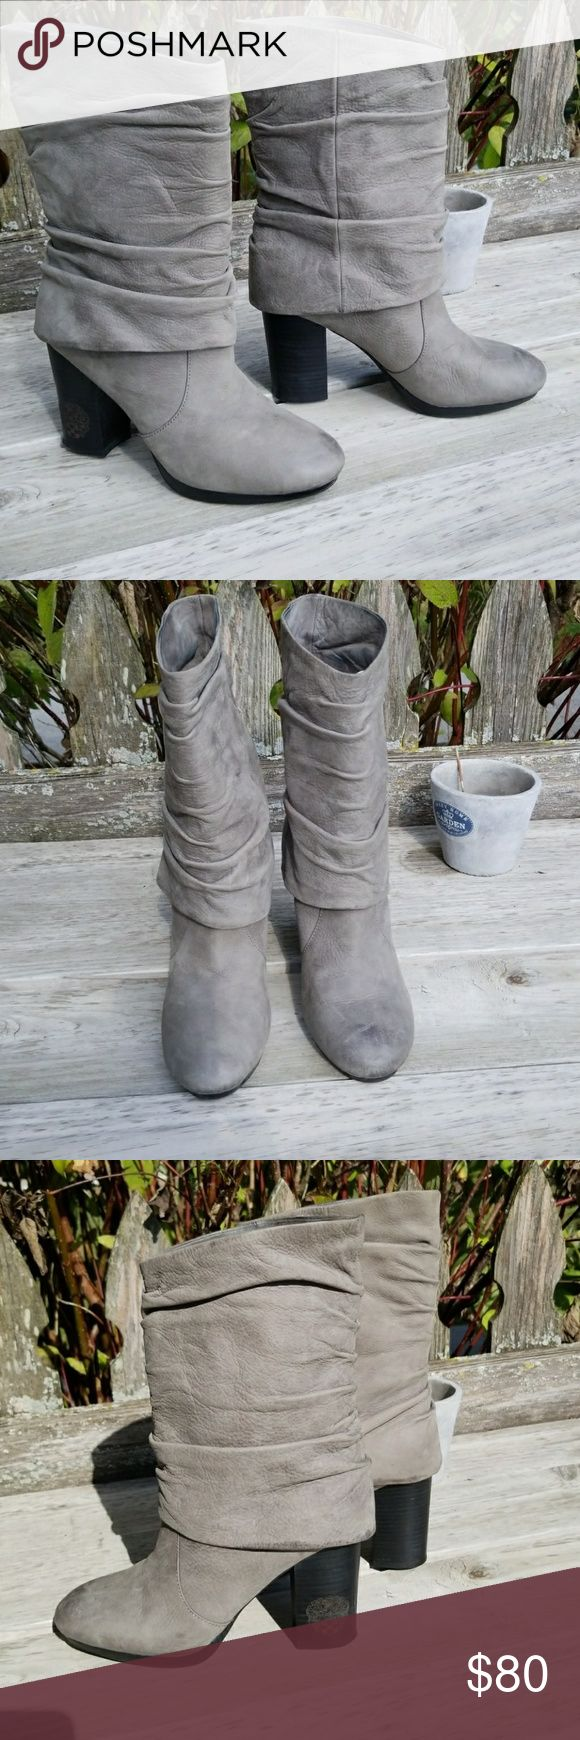 "Vince Camuto boots Vince Camuto grey slouchy top boots. I see pirate inspiration here, how about you? 😊 Leather upper with a burnished, uneven finish for a subtle distressed look. Heel height is 3.5"", the platform is 0.5"". These have minimal wear, EUC. Questions and offers welcome. Vince Camuto Shoes Heeled Boots"